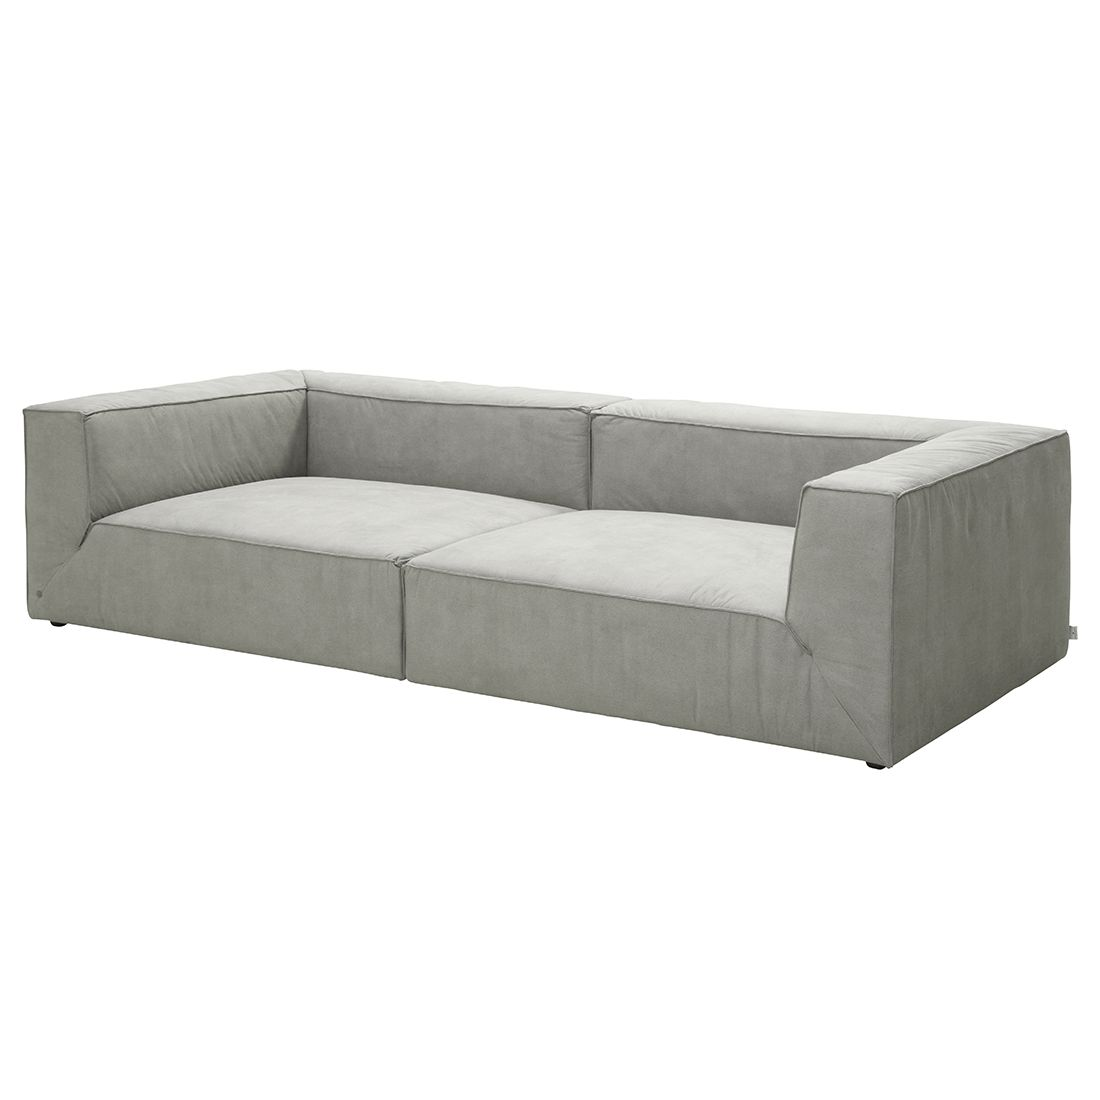 Full Size of Otto Couch Tom Tailor Sofa Big Cube Heaven Style Colors Xl Nordic Chic Elements S West Coast Bigsofa 4 Sitzer Von Design Um Welt Ligne Roset Le Corbusier In L Sofa Sofa Tom Tailor